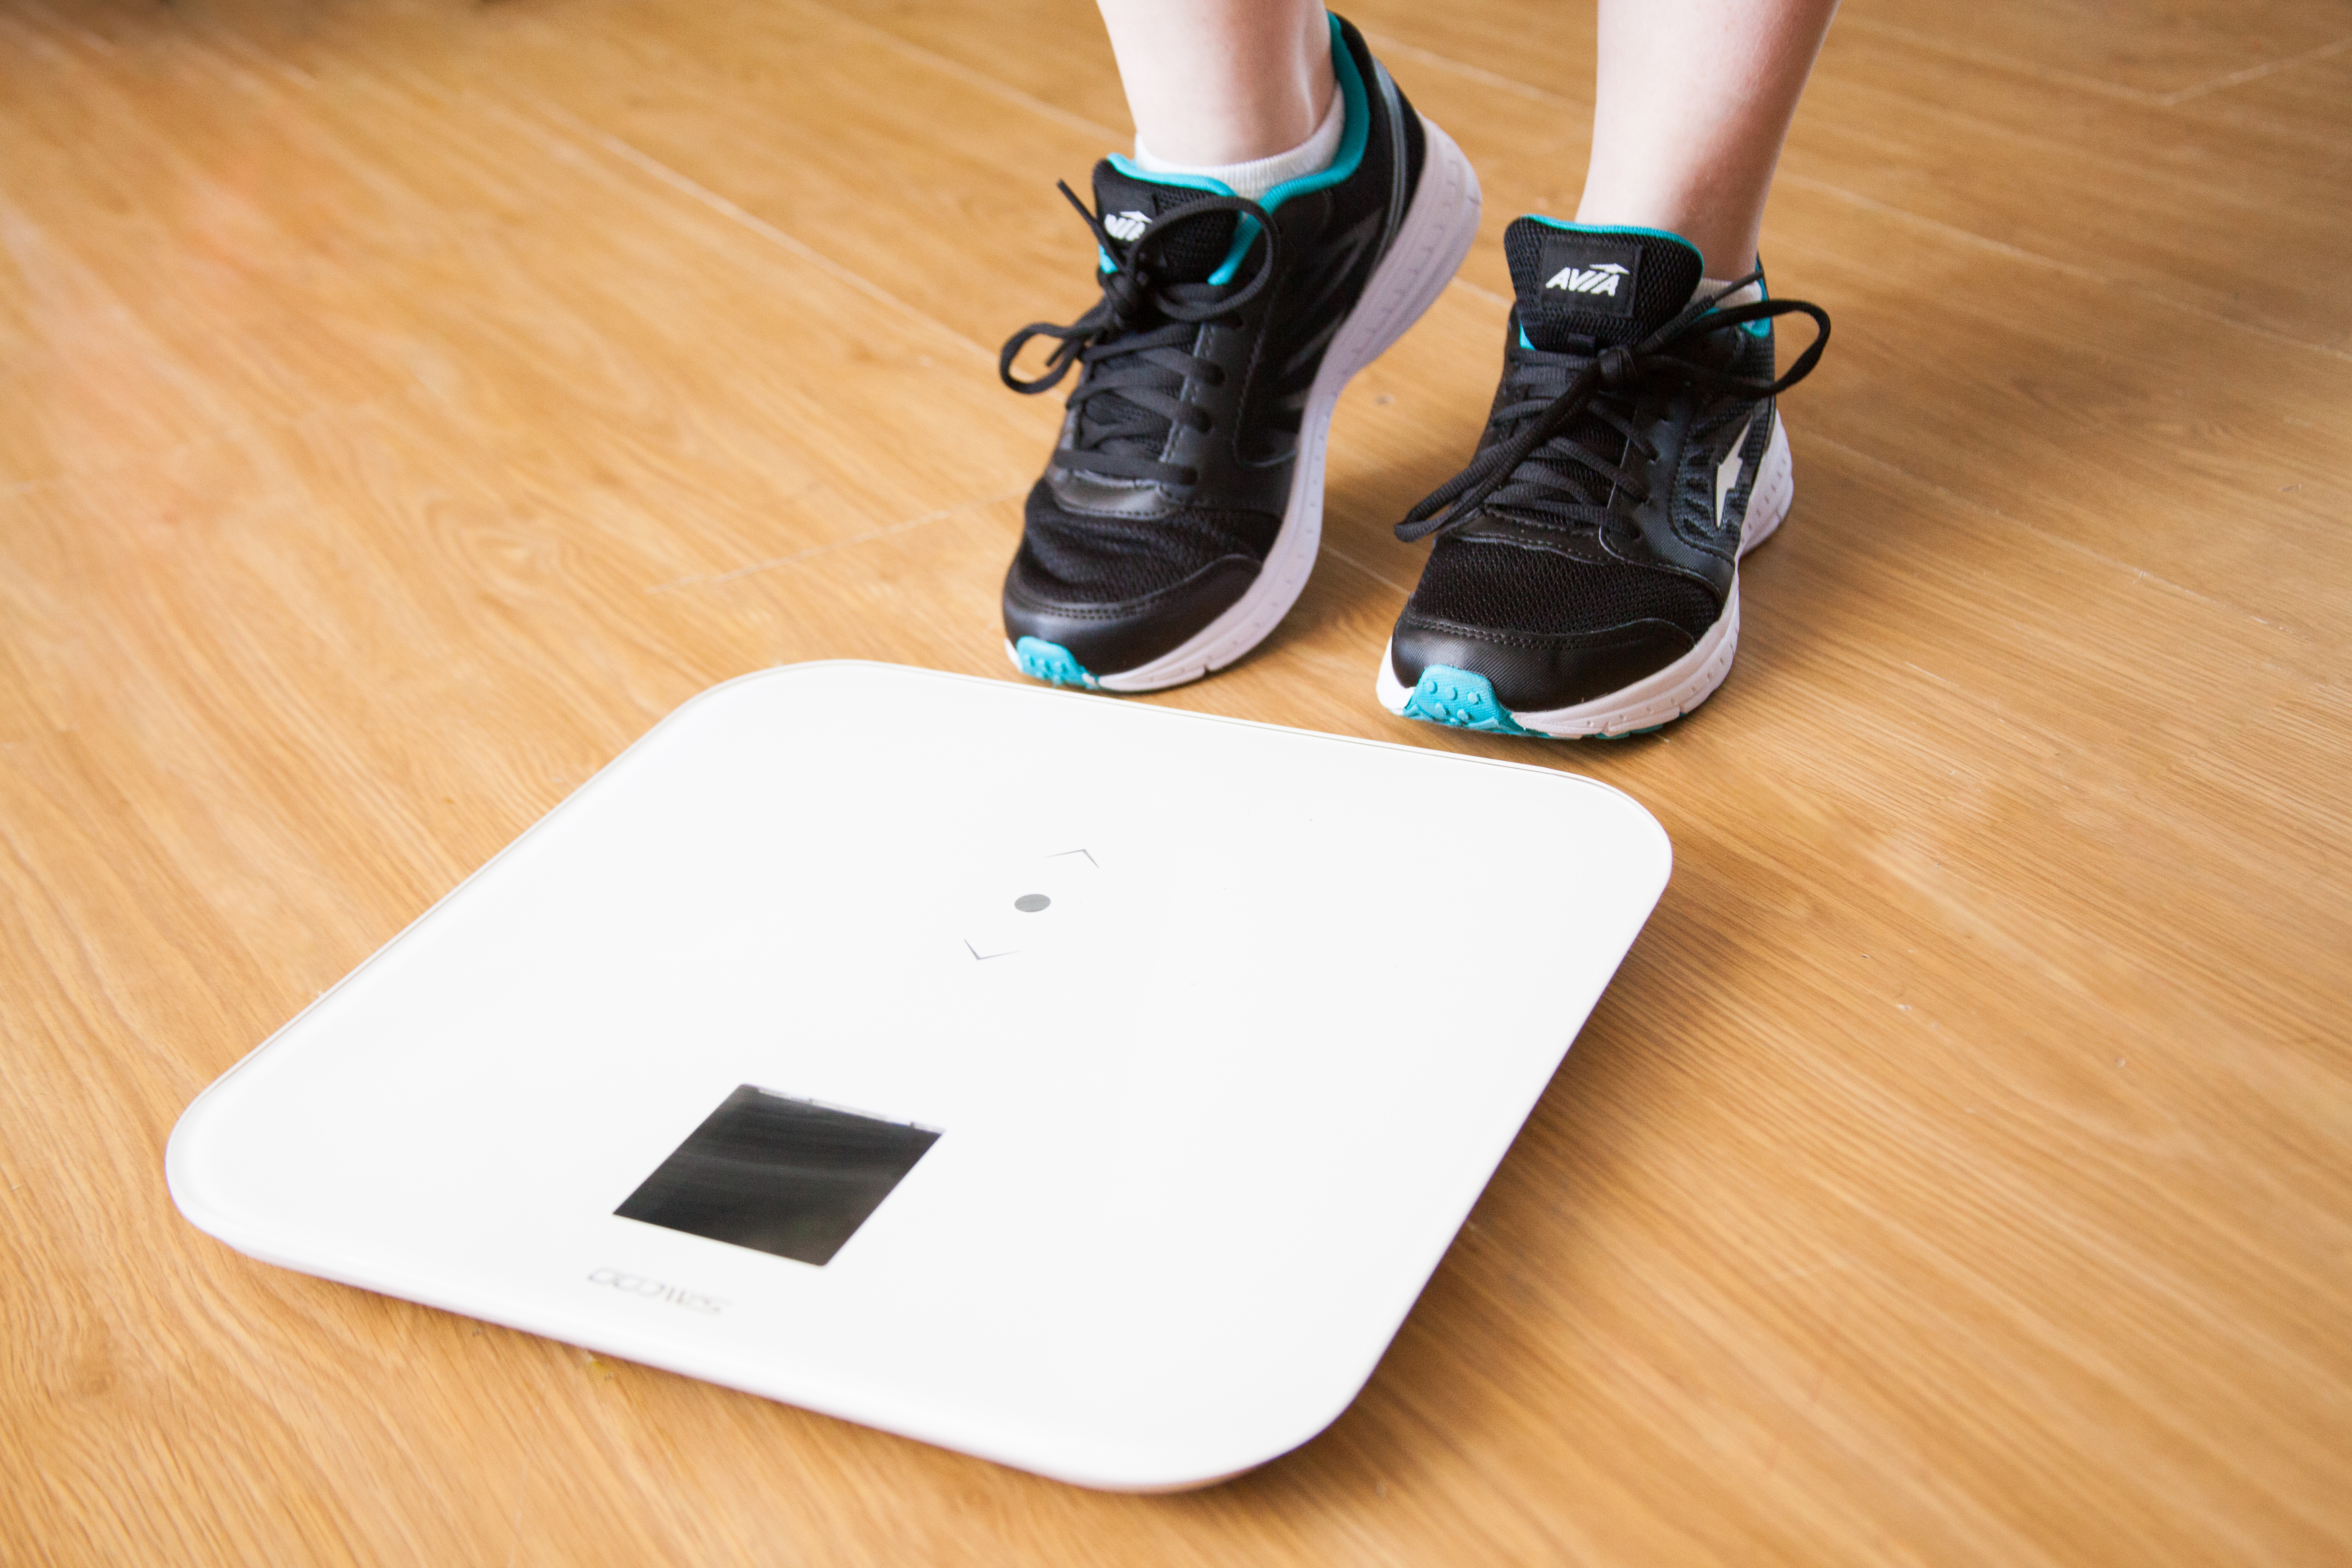 Weighing in on weight loss: Inspiration